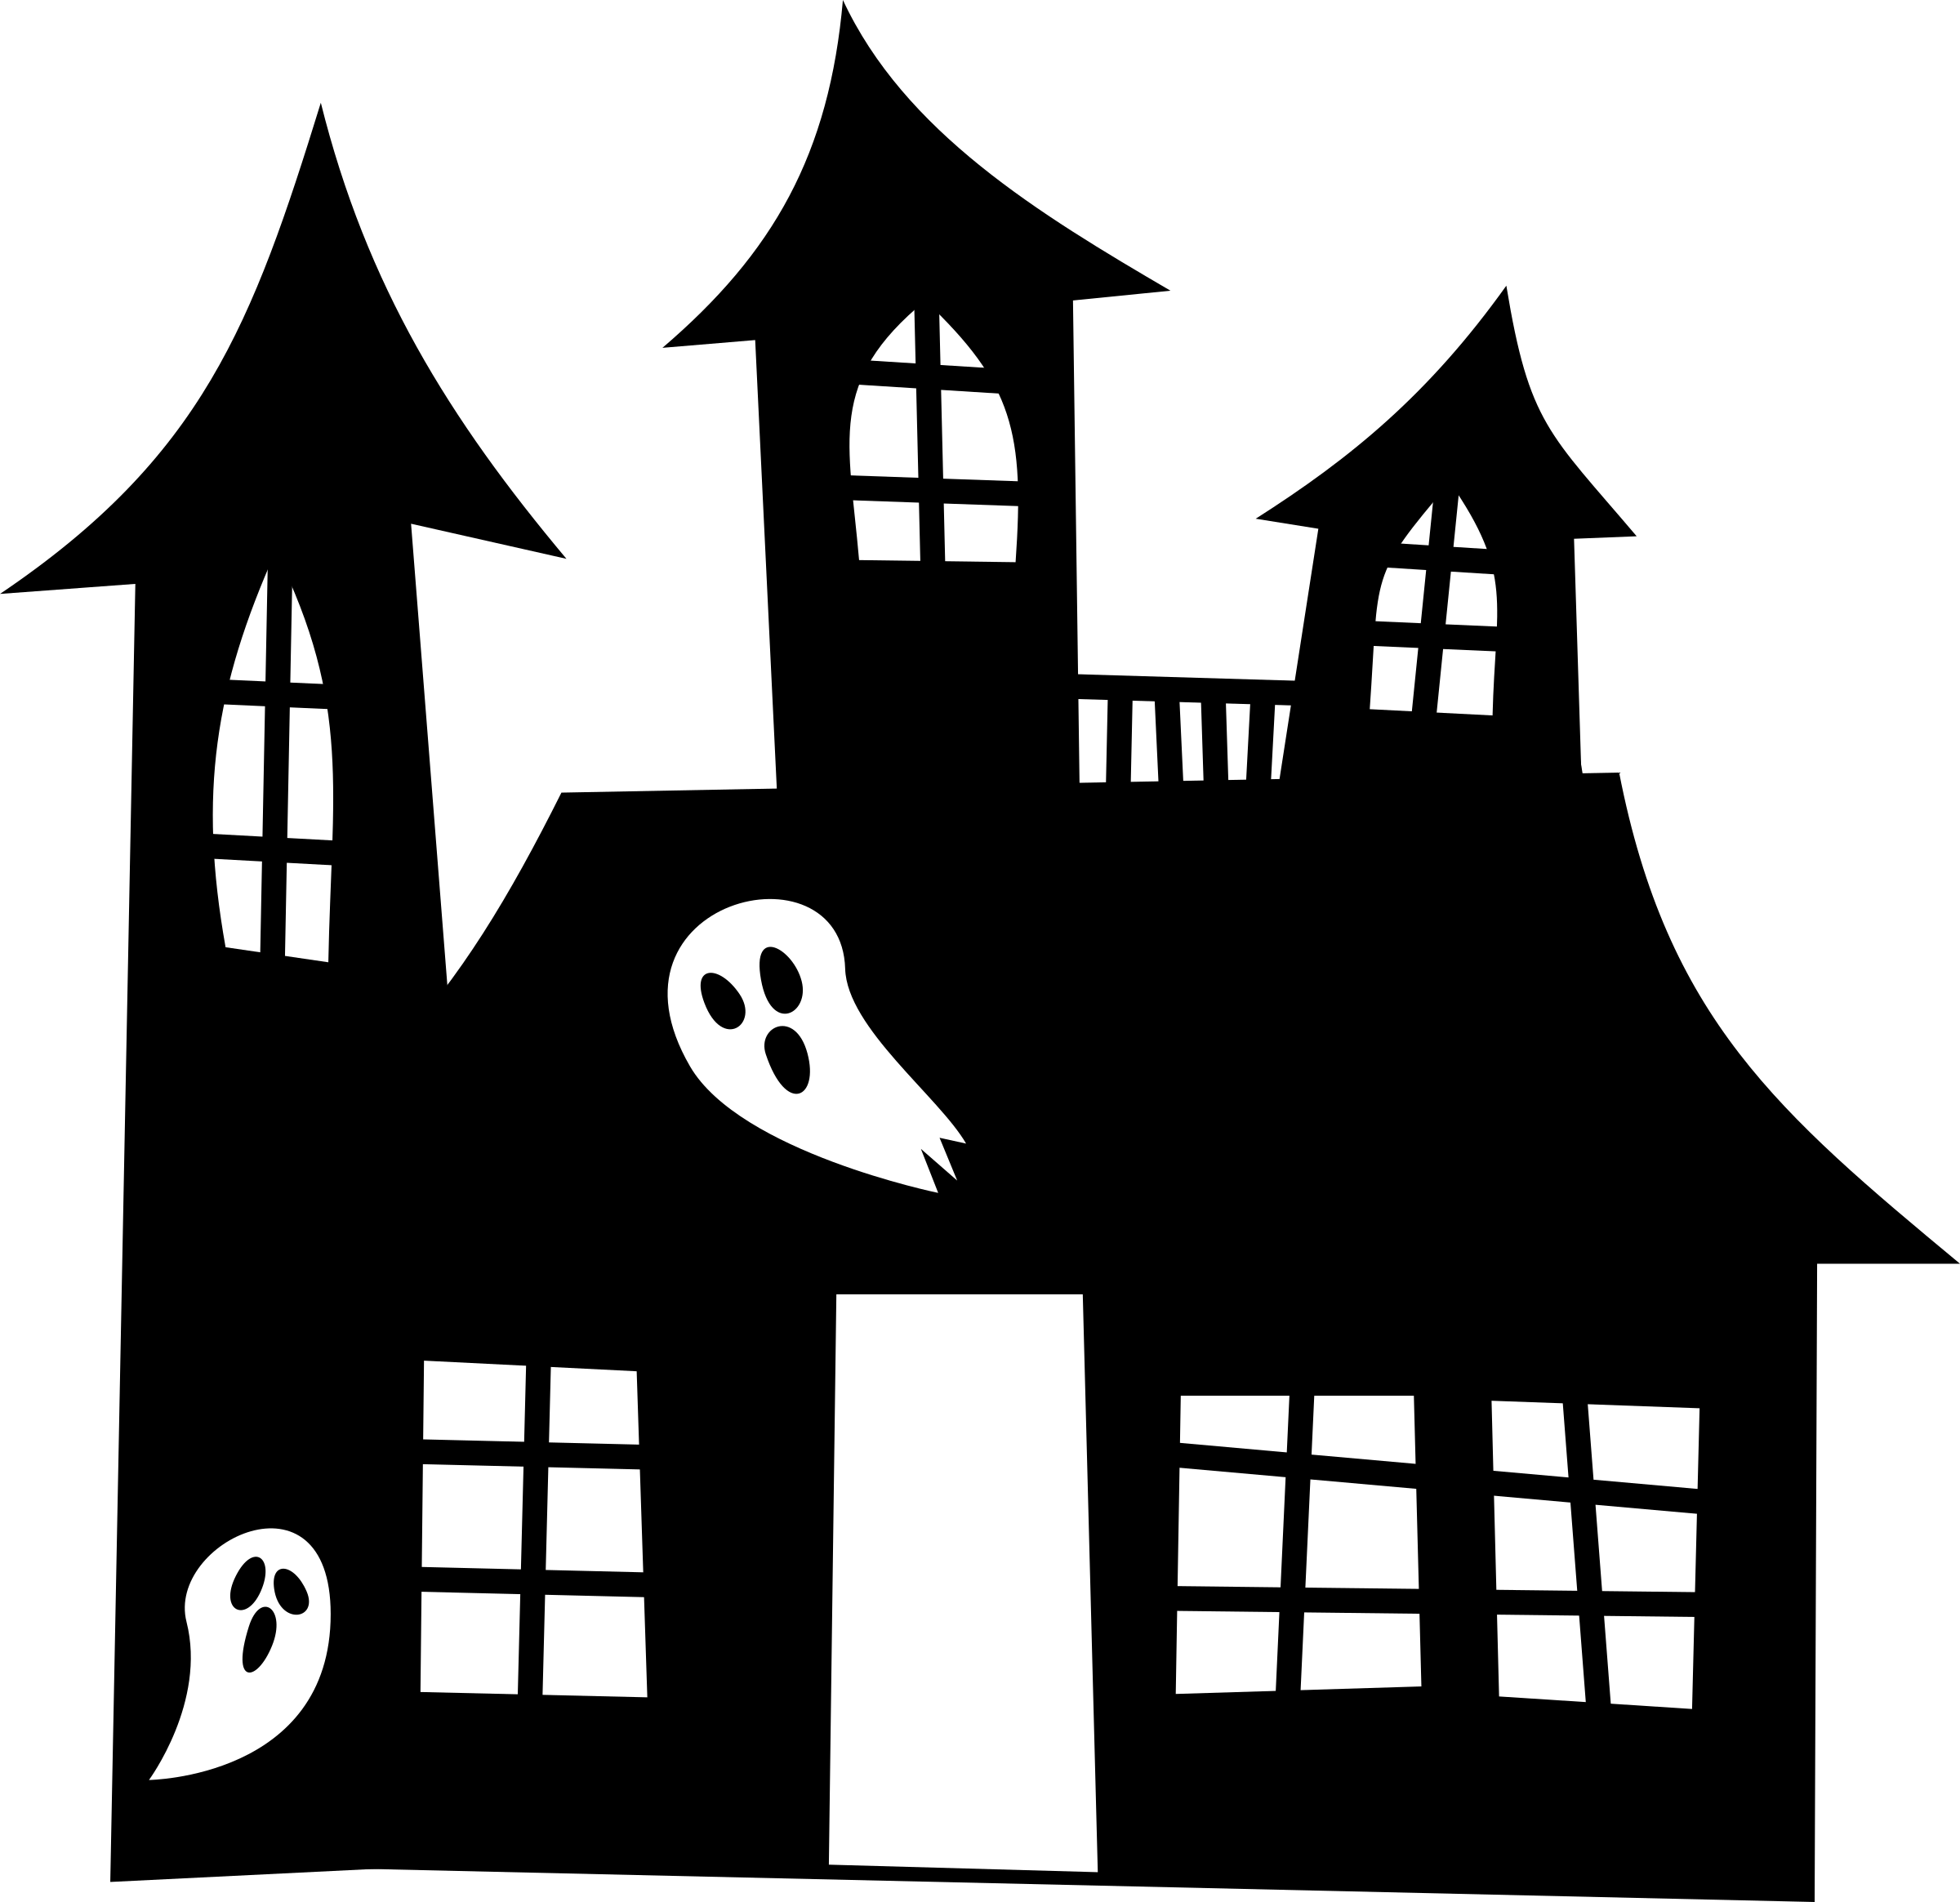 Haunted house silhouette by spacefem